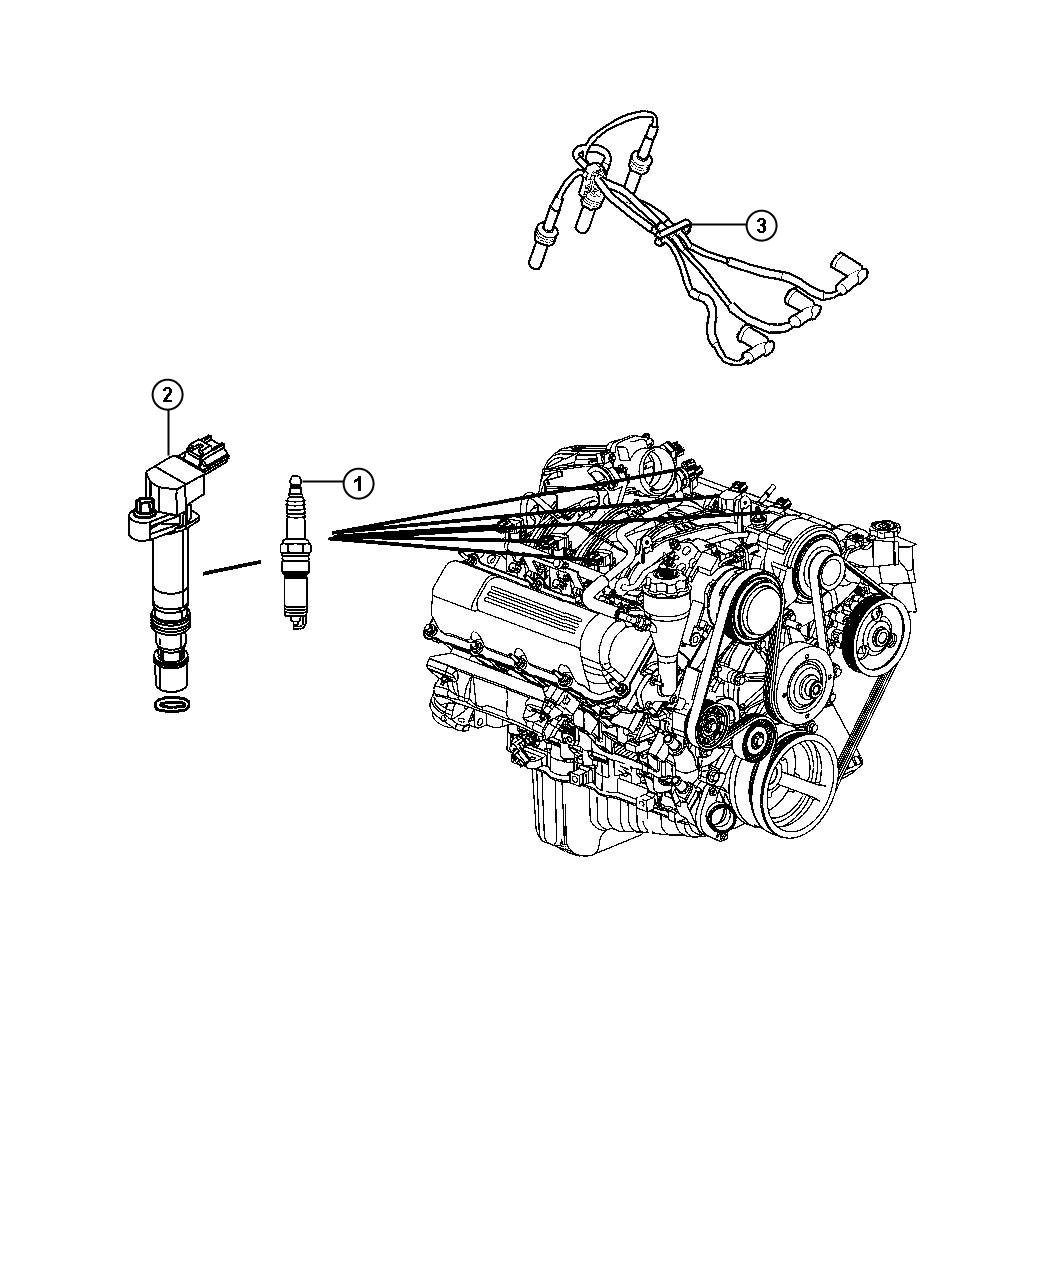 Jeep Liberty Spark Plugs And Ignition Coil